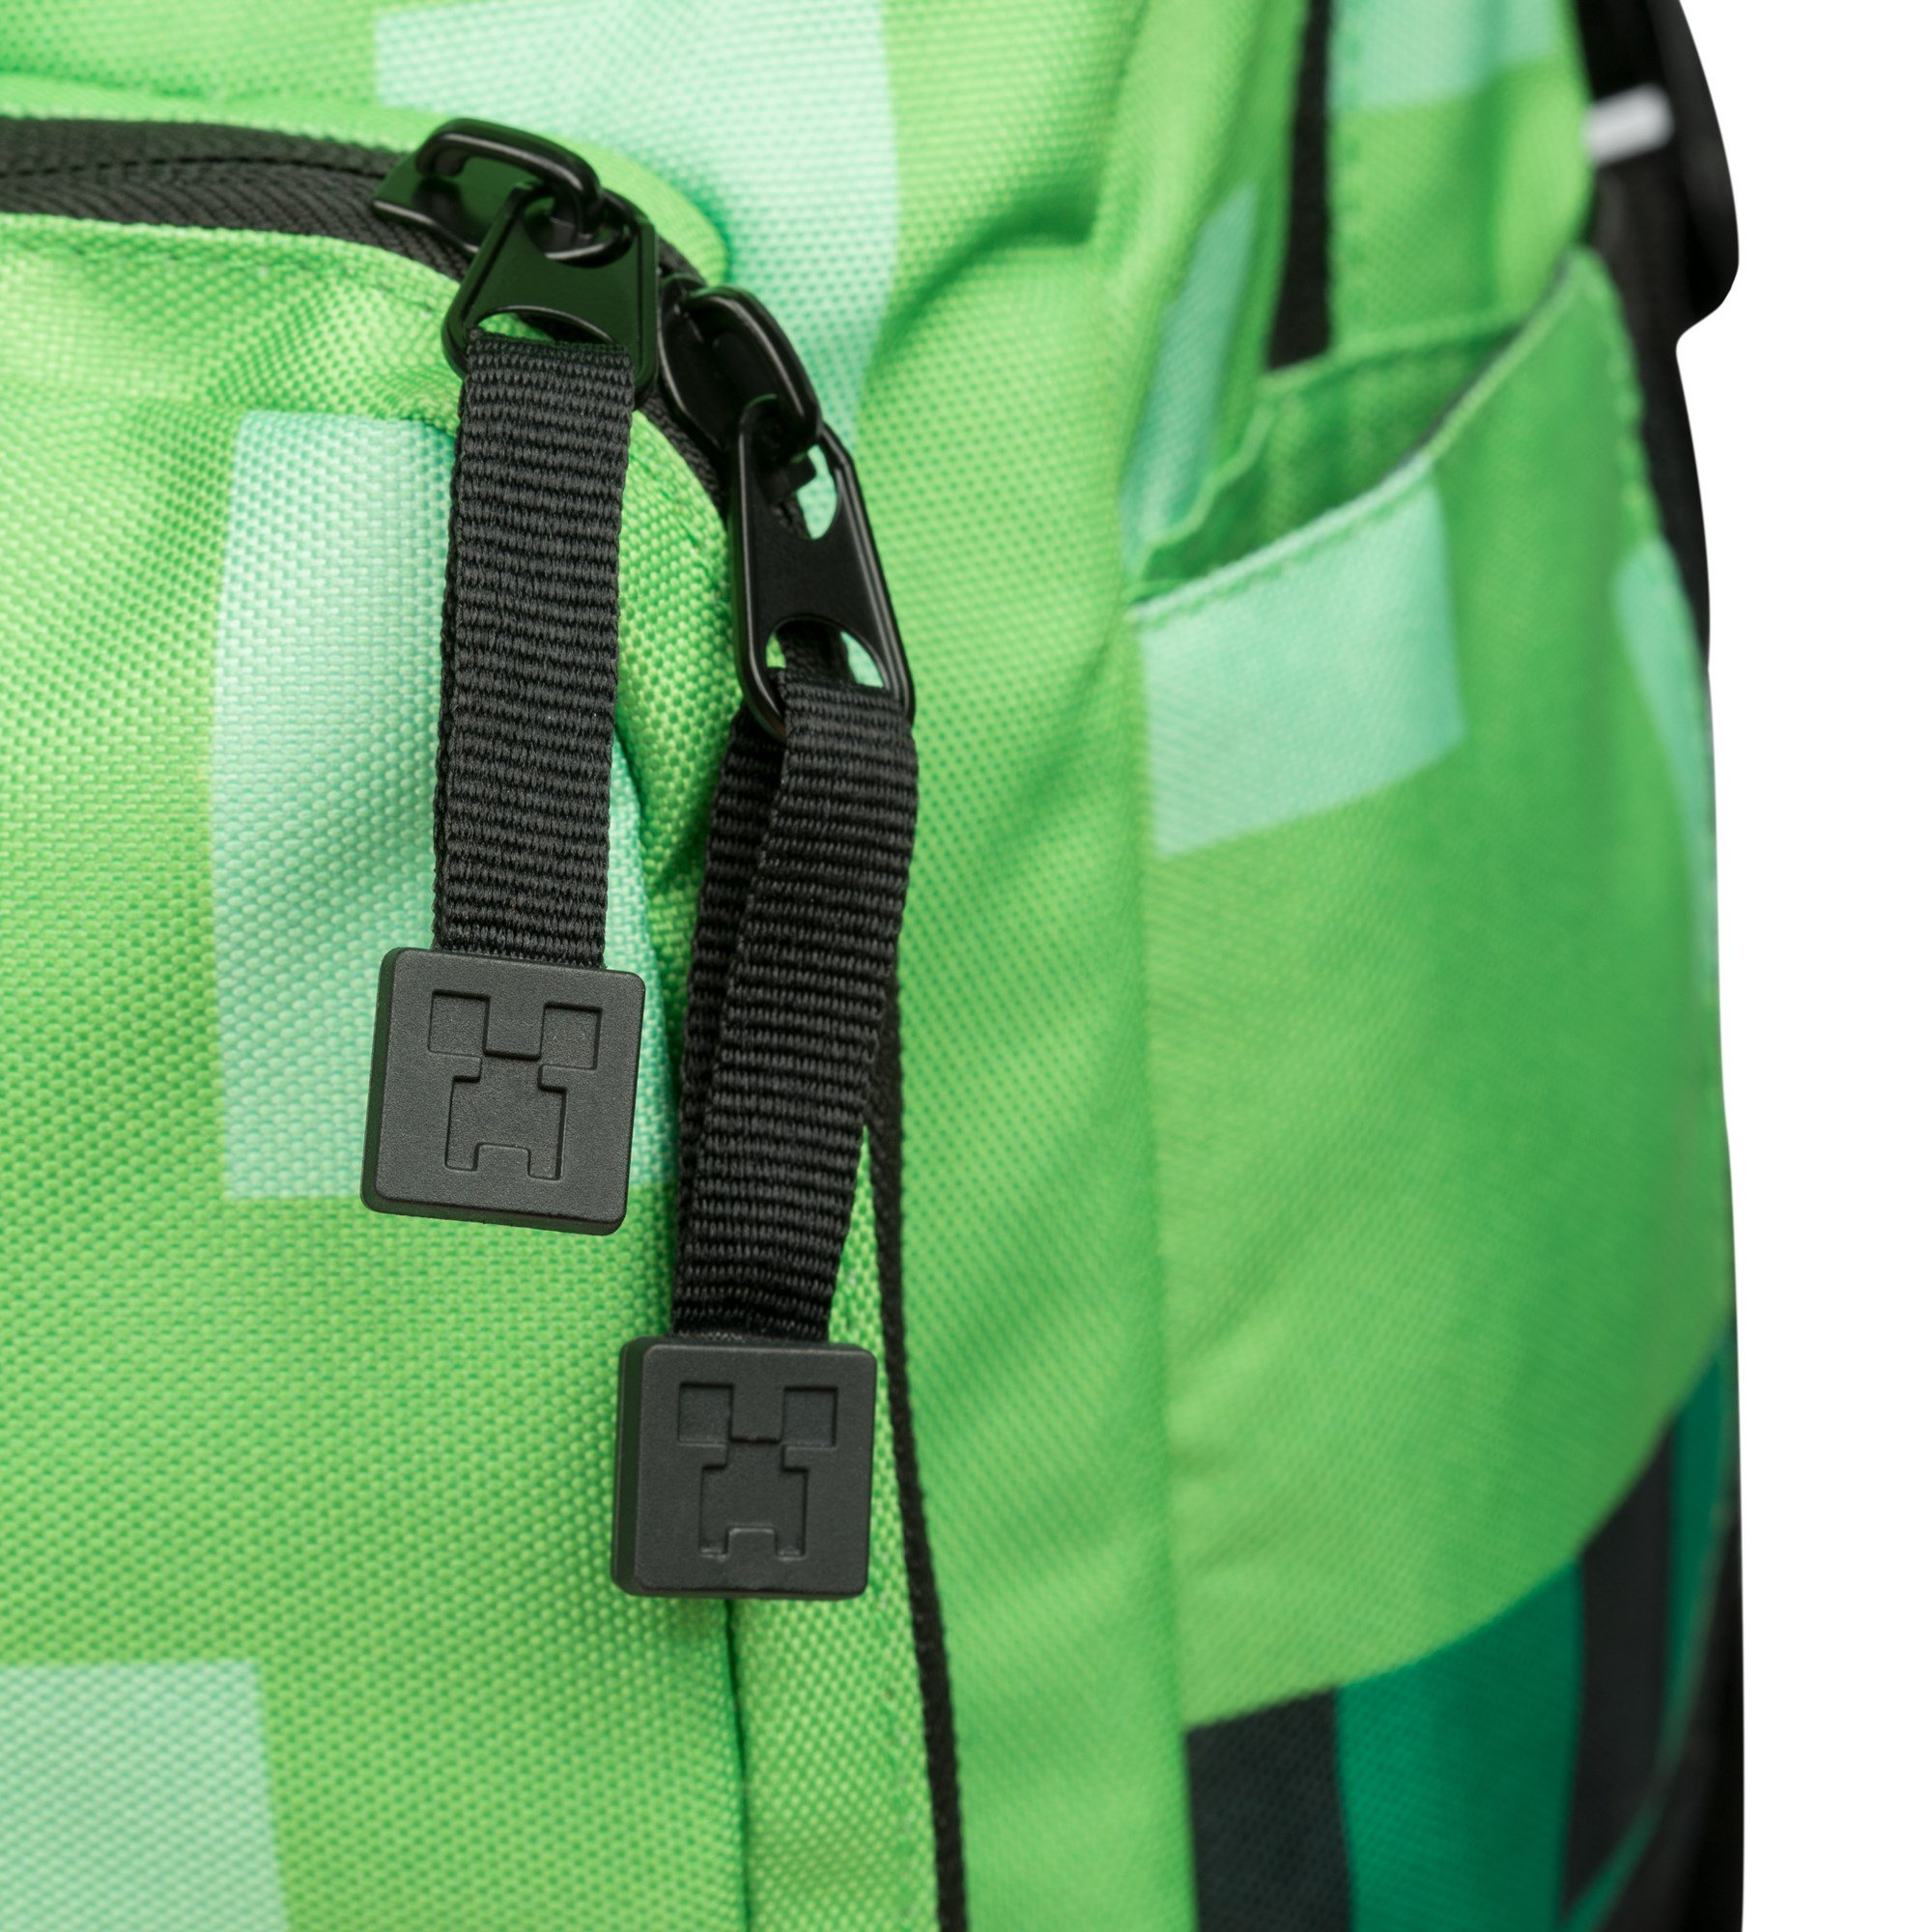 JINX Minecraft Creeper Kids Backpack (Green, 18'') for School, Camping, Travel, Outdoors & Fun by JINX (Image #6)